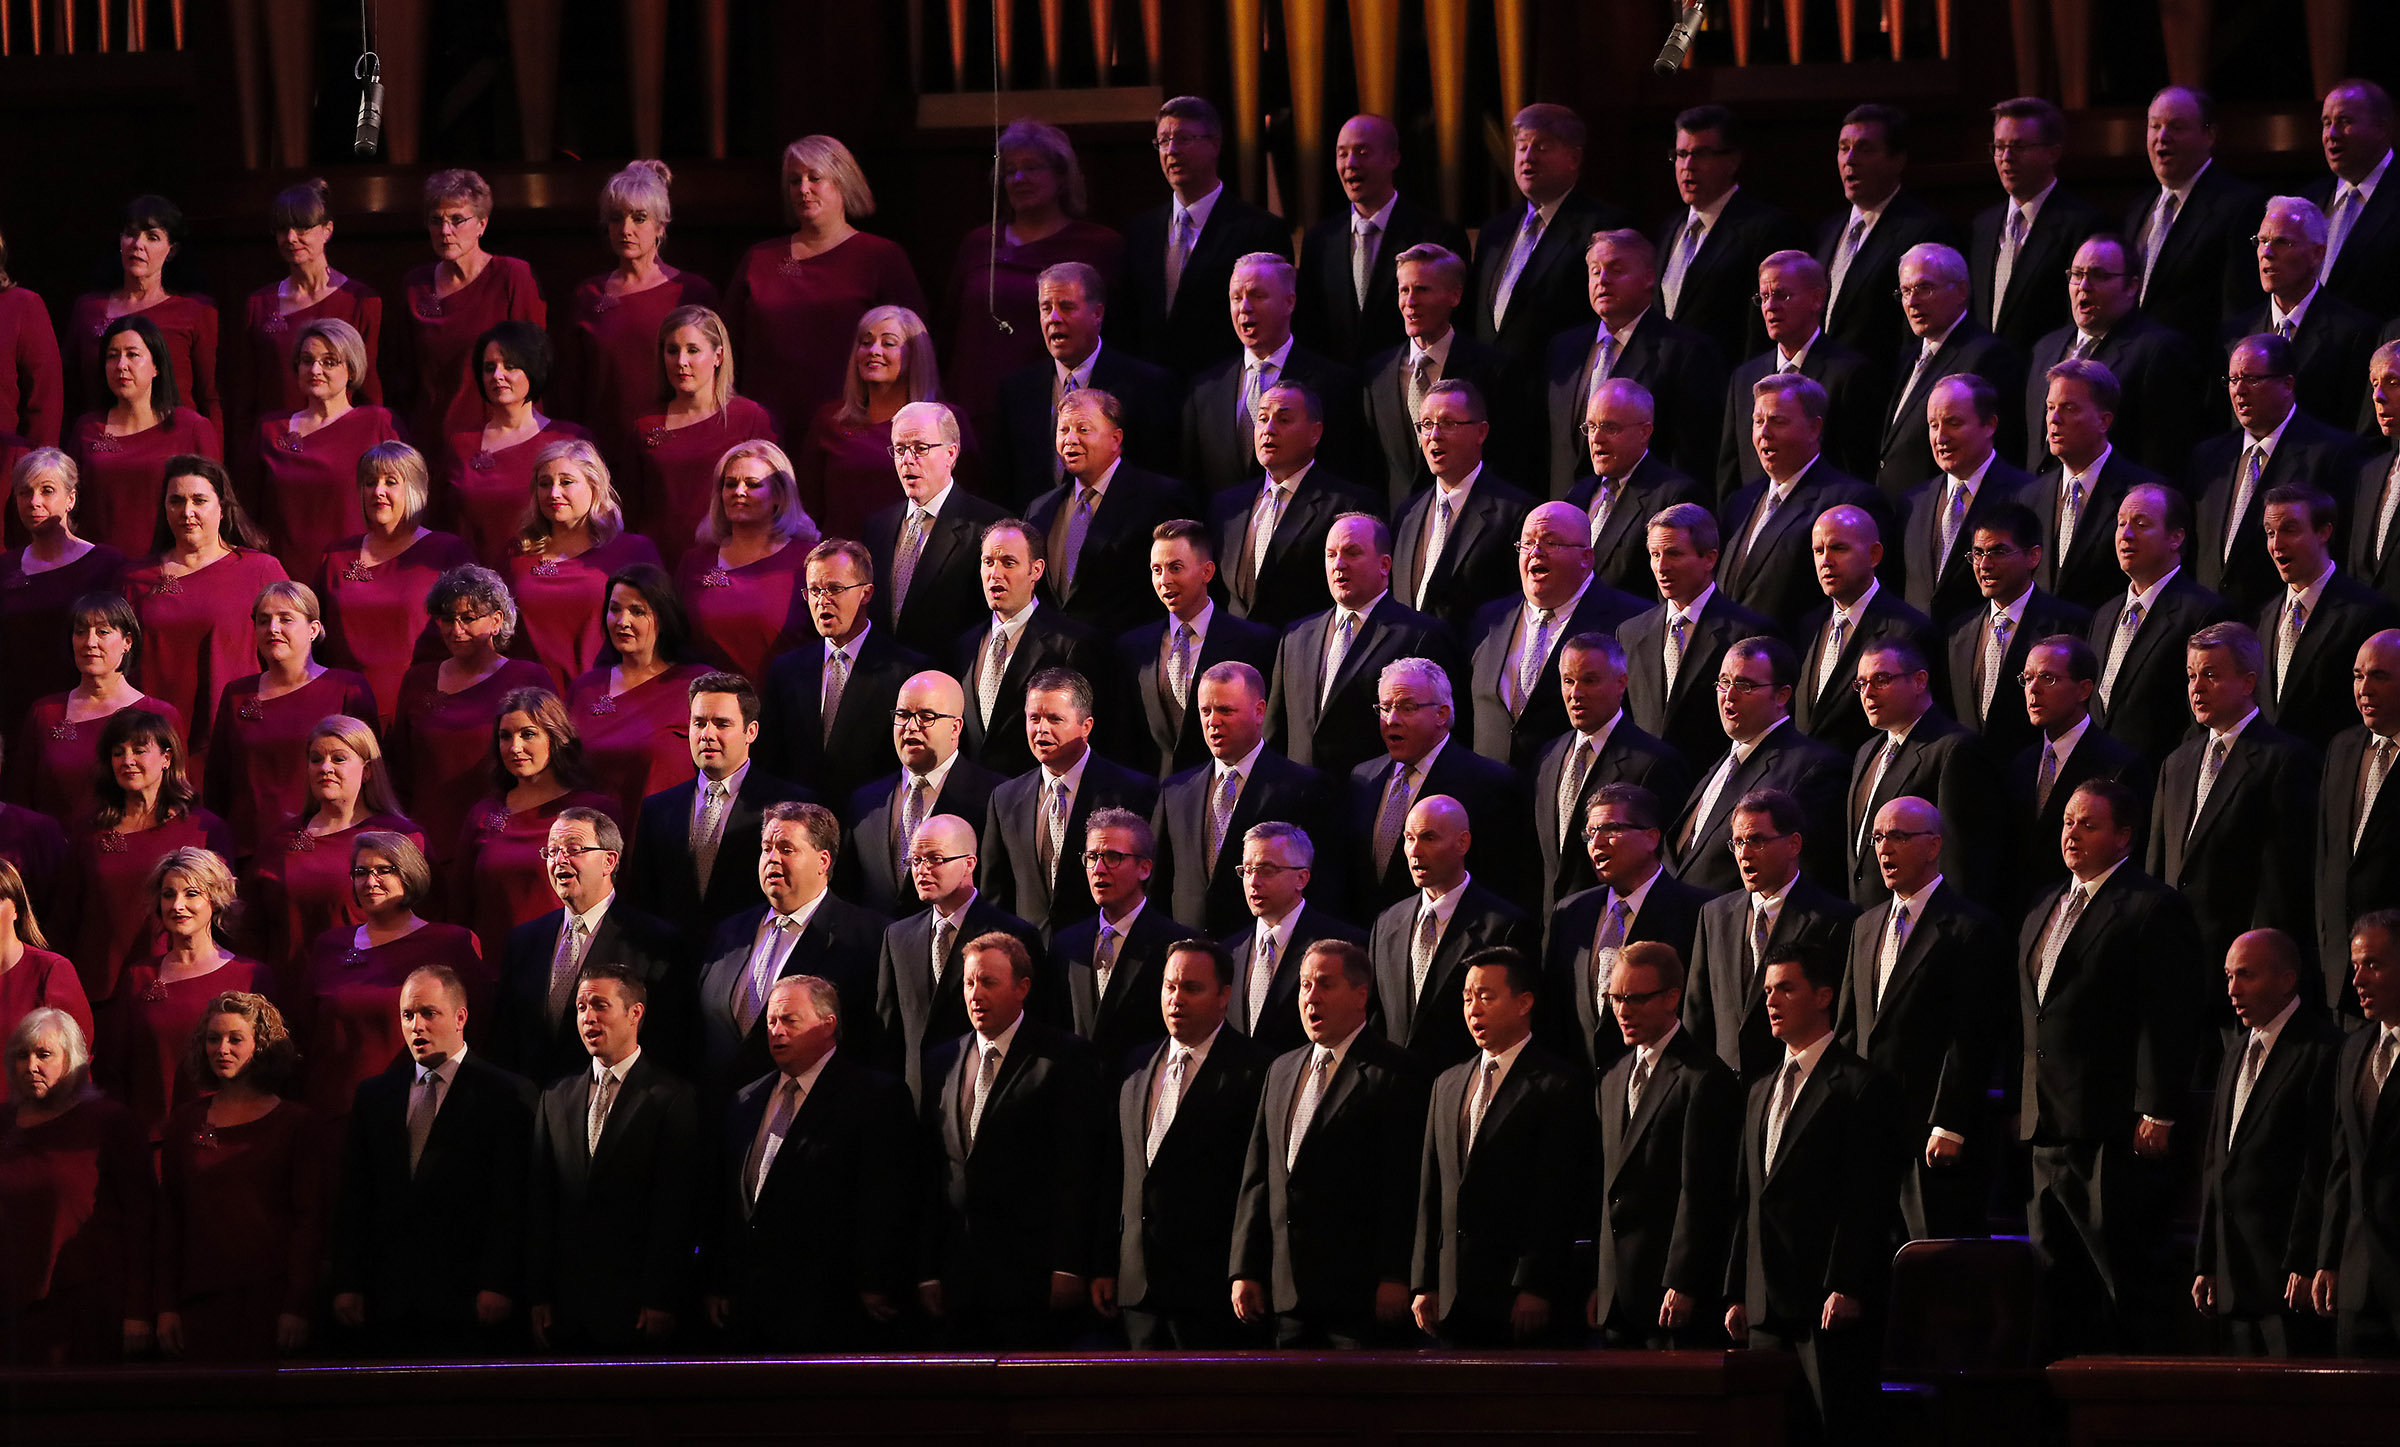 """Members of the Mormon Tabernacle Choir perform their annual Pioneer Concert at the Conference Center in Salt Lake City with guest performers Matthew Morrison, Laura Michelle Kelly and narrator Oscar """"Andy"""" Hammerstein III on Friday, July 20, 2018."""